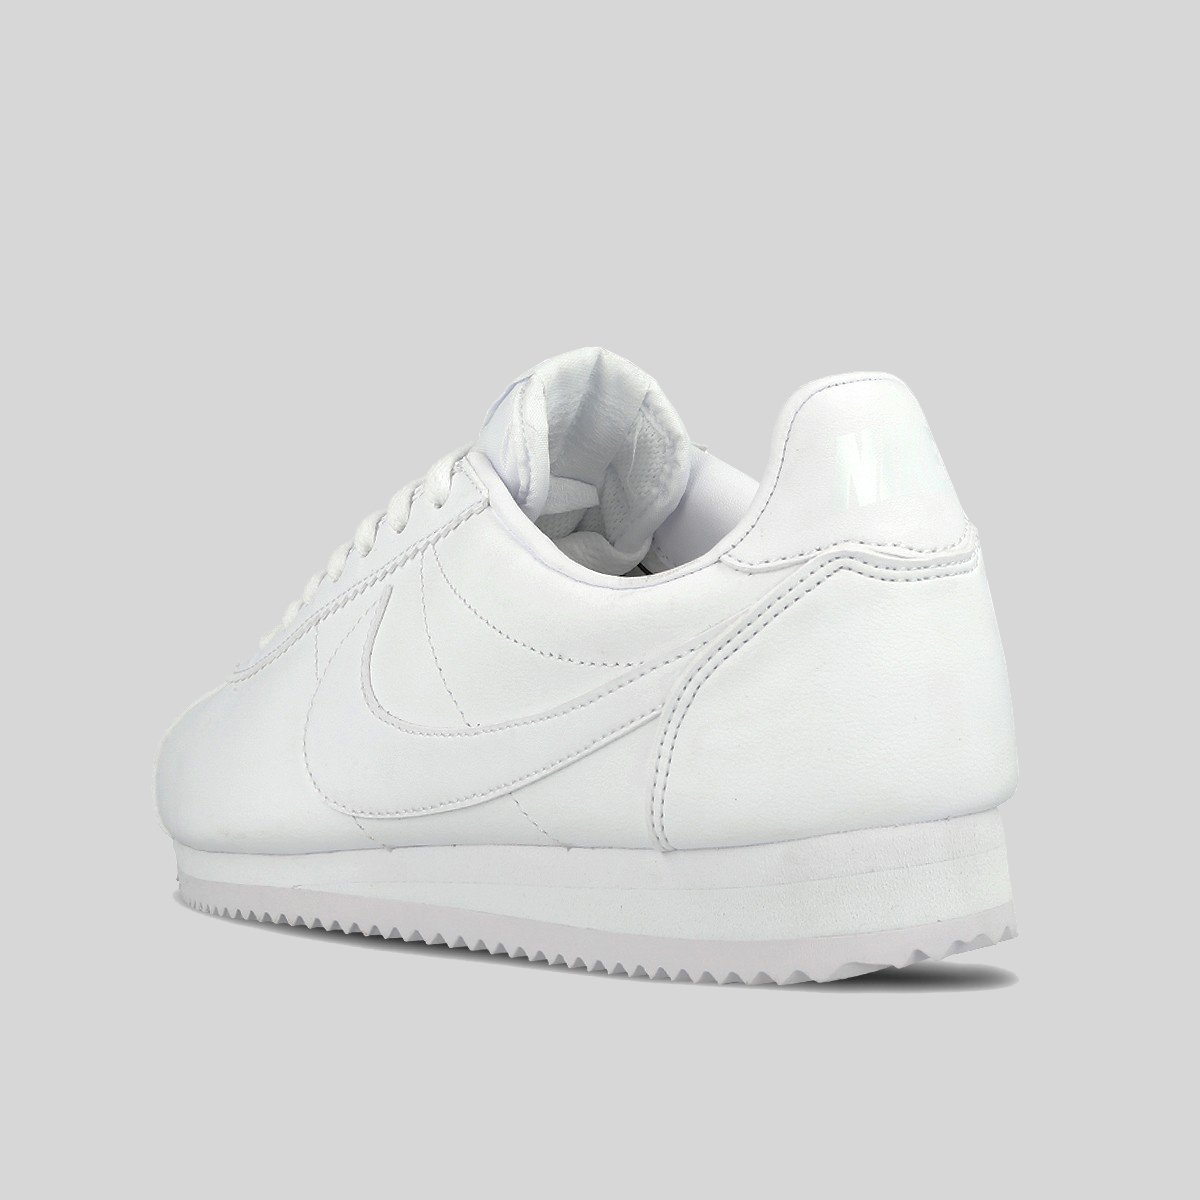 NIKE WMNS CLASSIC CORTEZ ALL WHITE LEATHER Women Running WHITE/WHITE 807471-102